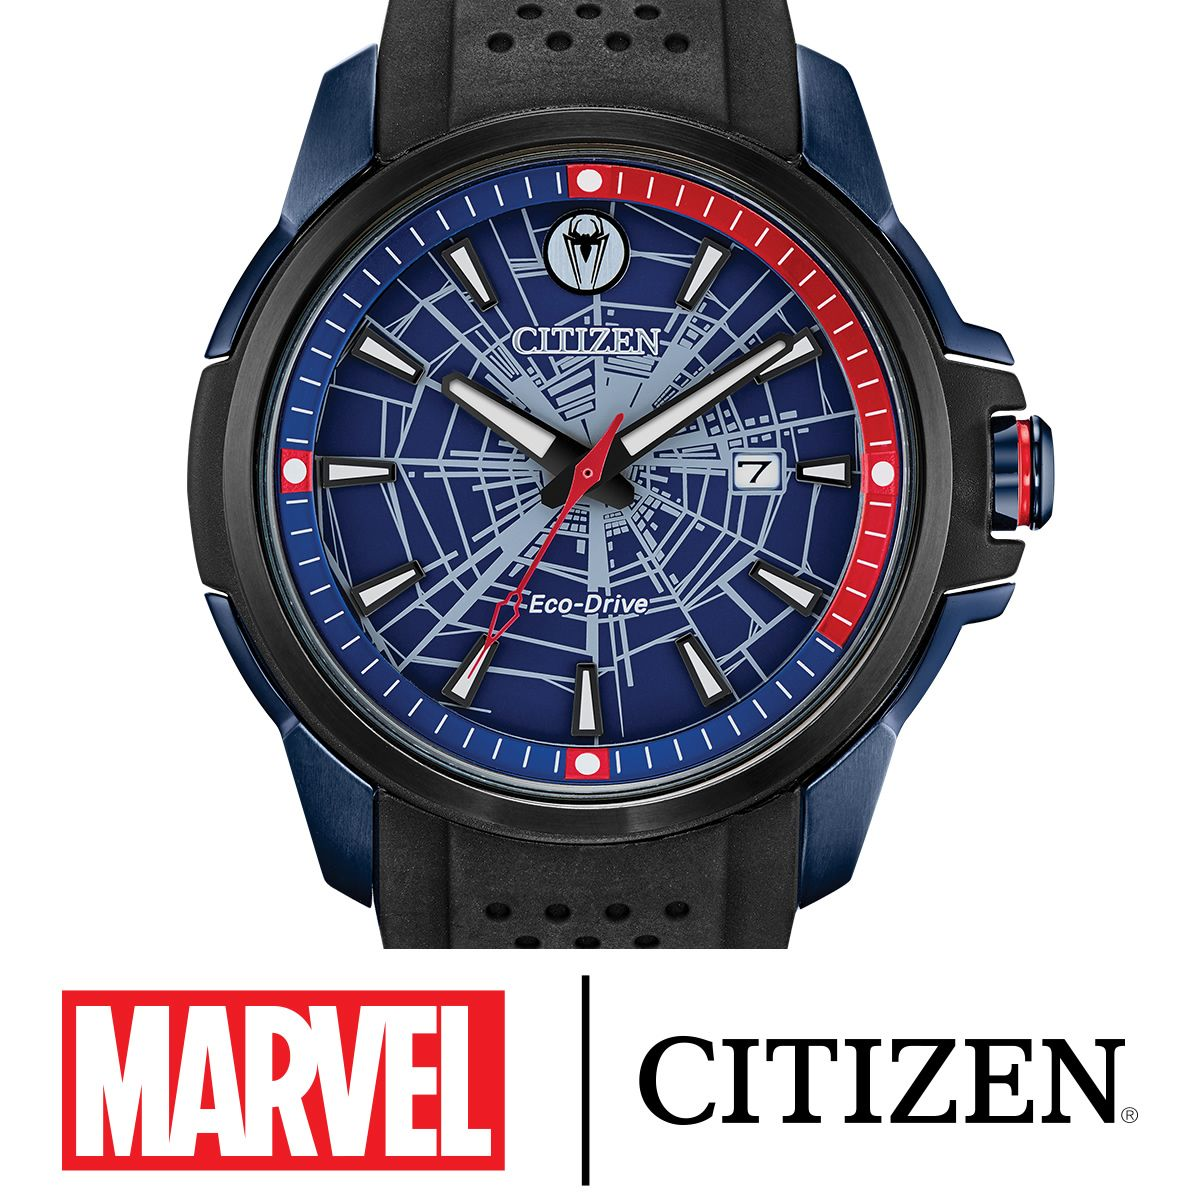 Marvel Citizen